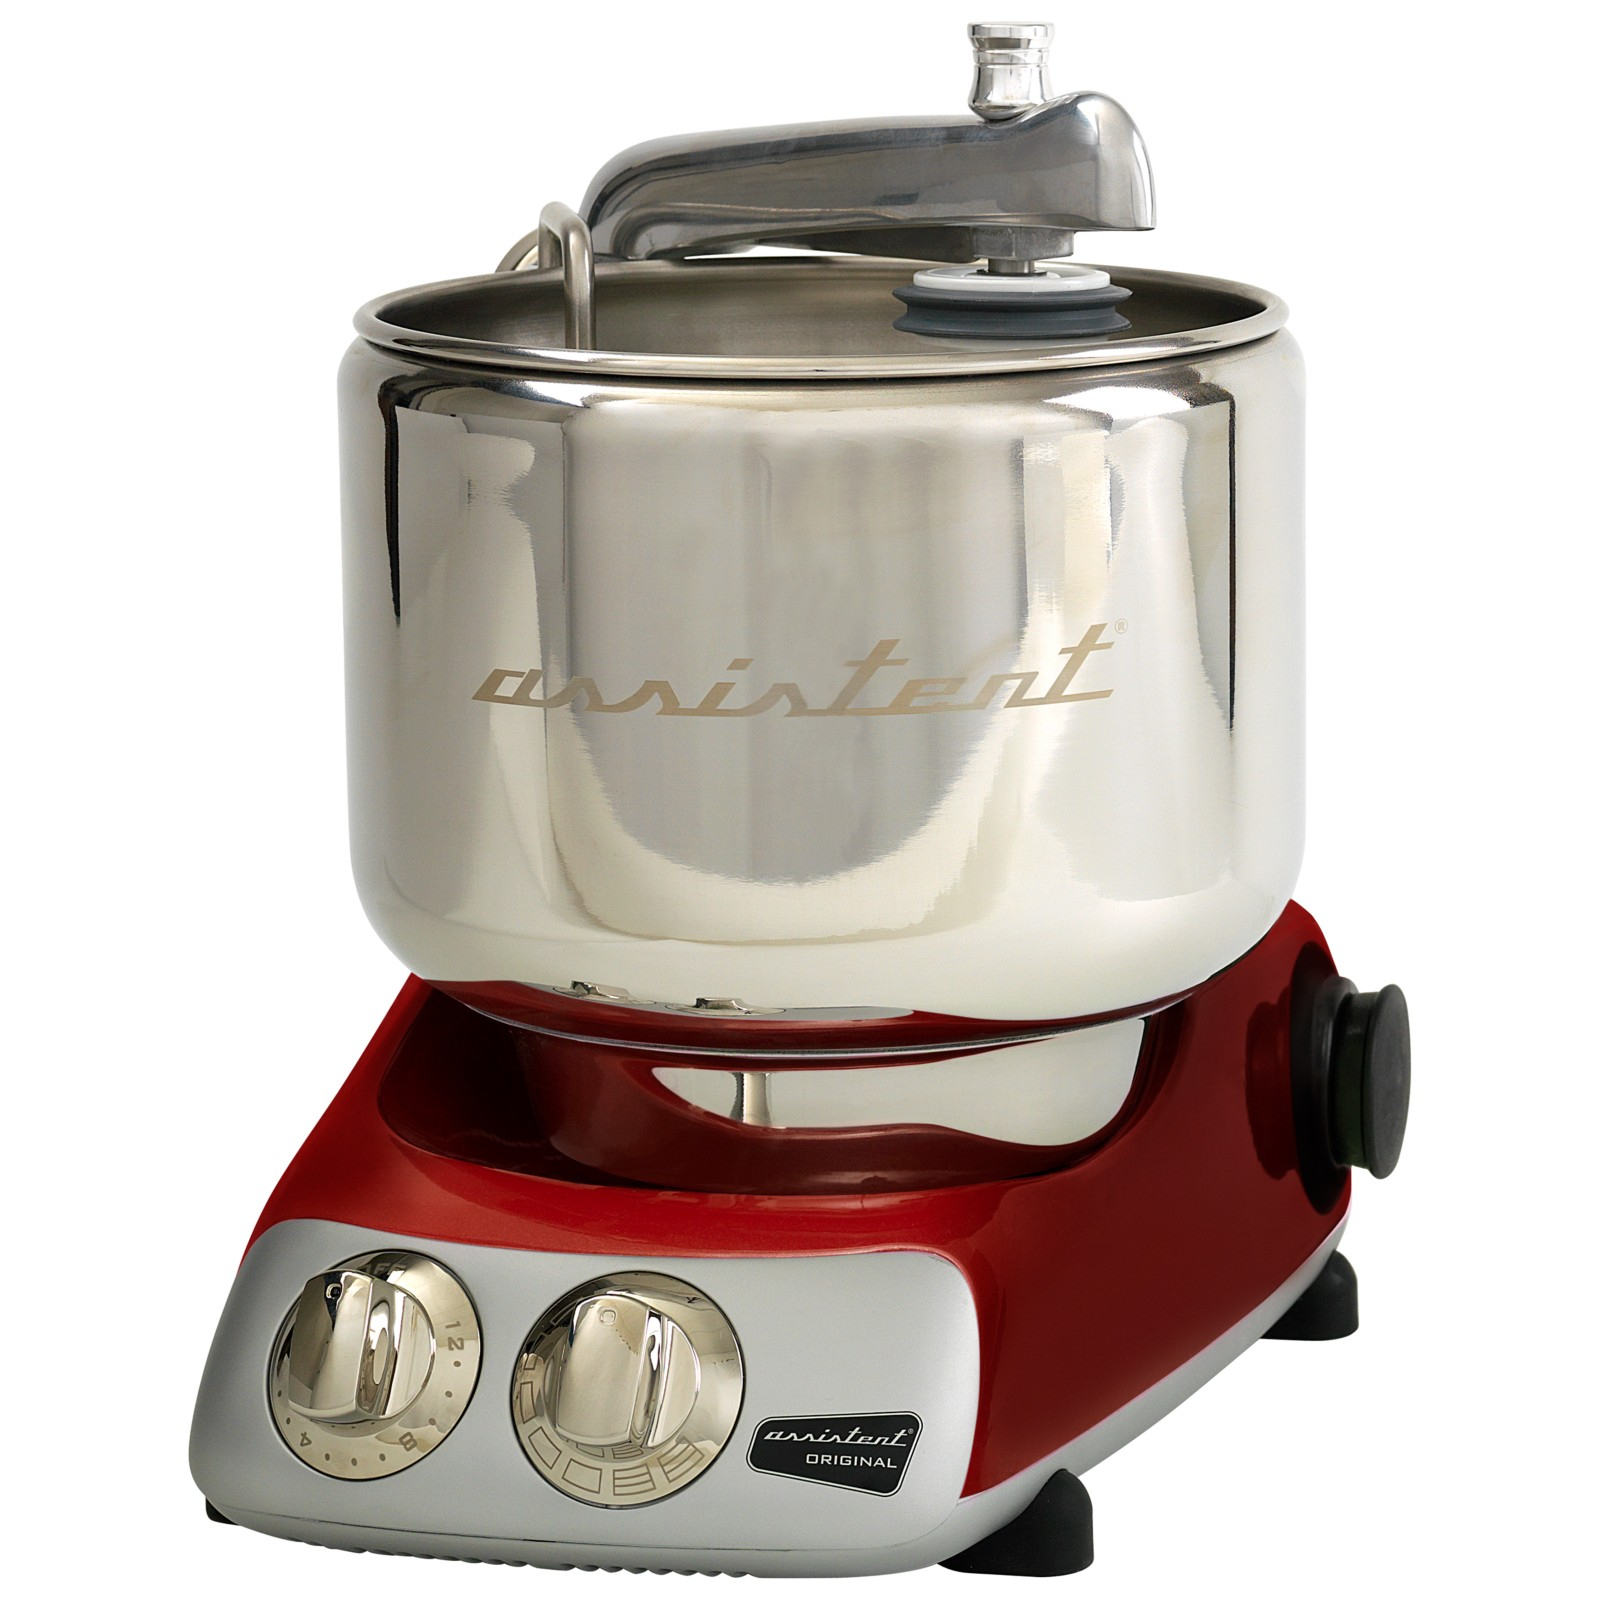 Assistent AKM6120 Stand Mixer Red